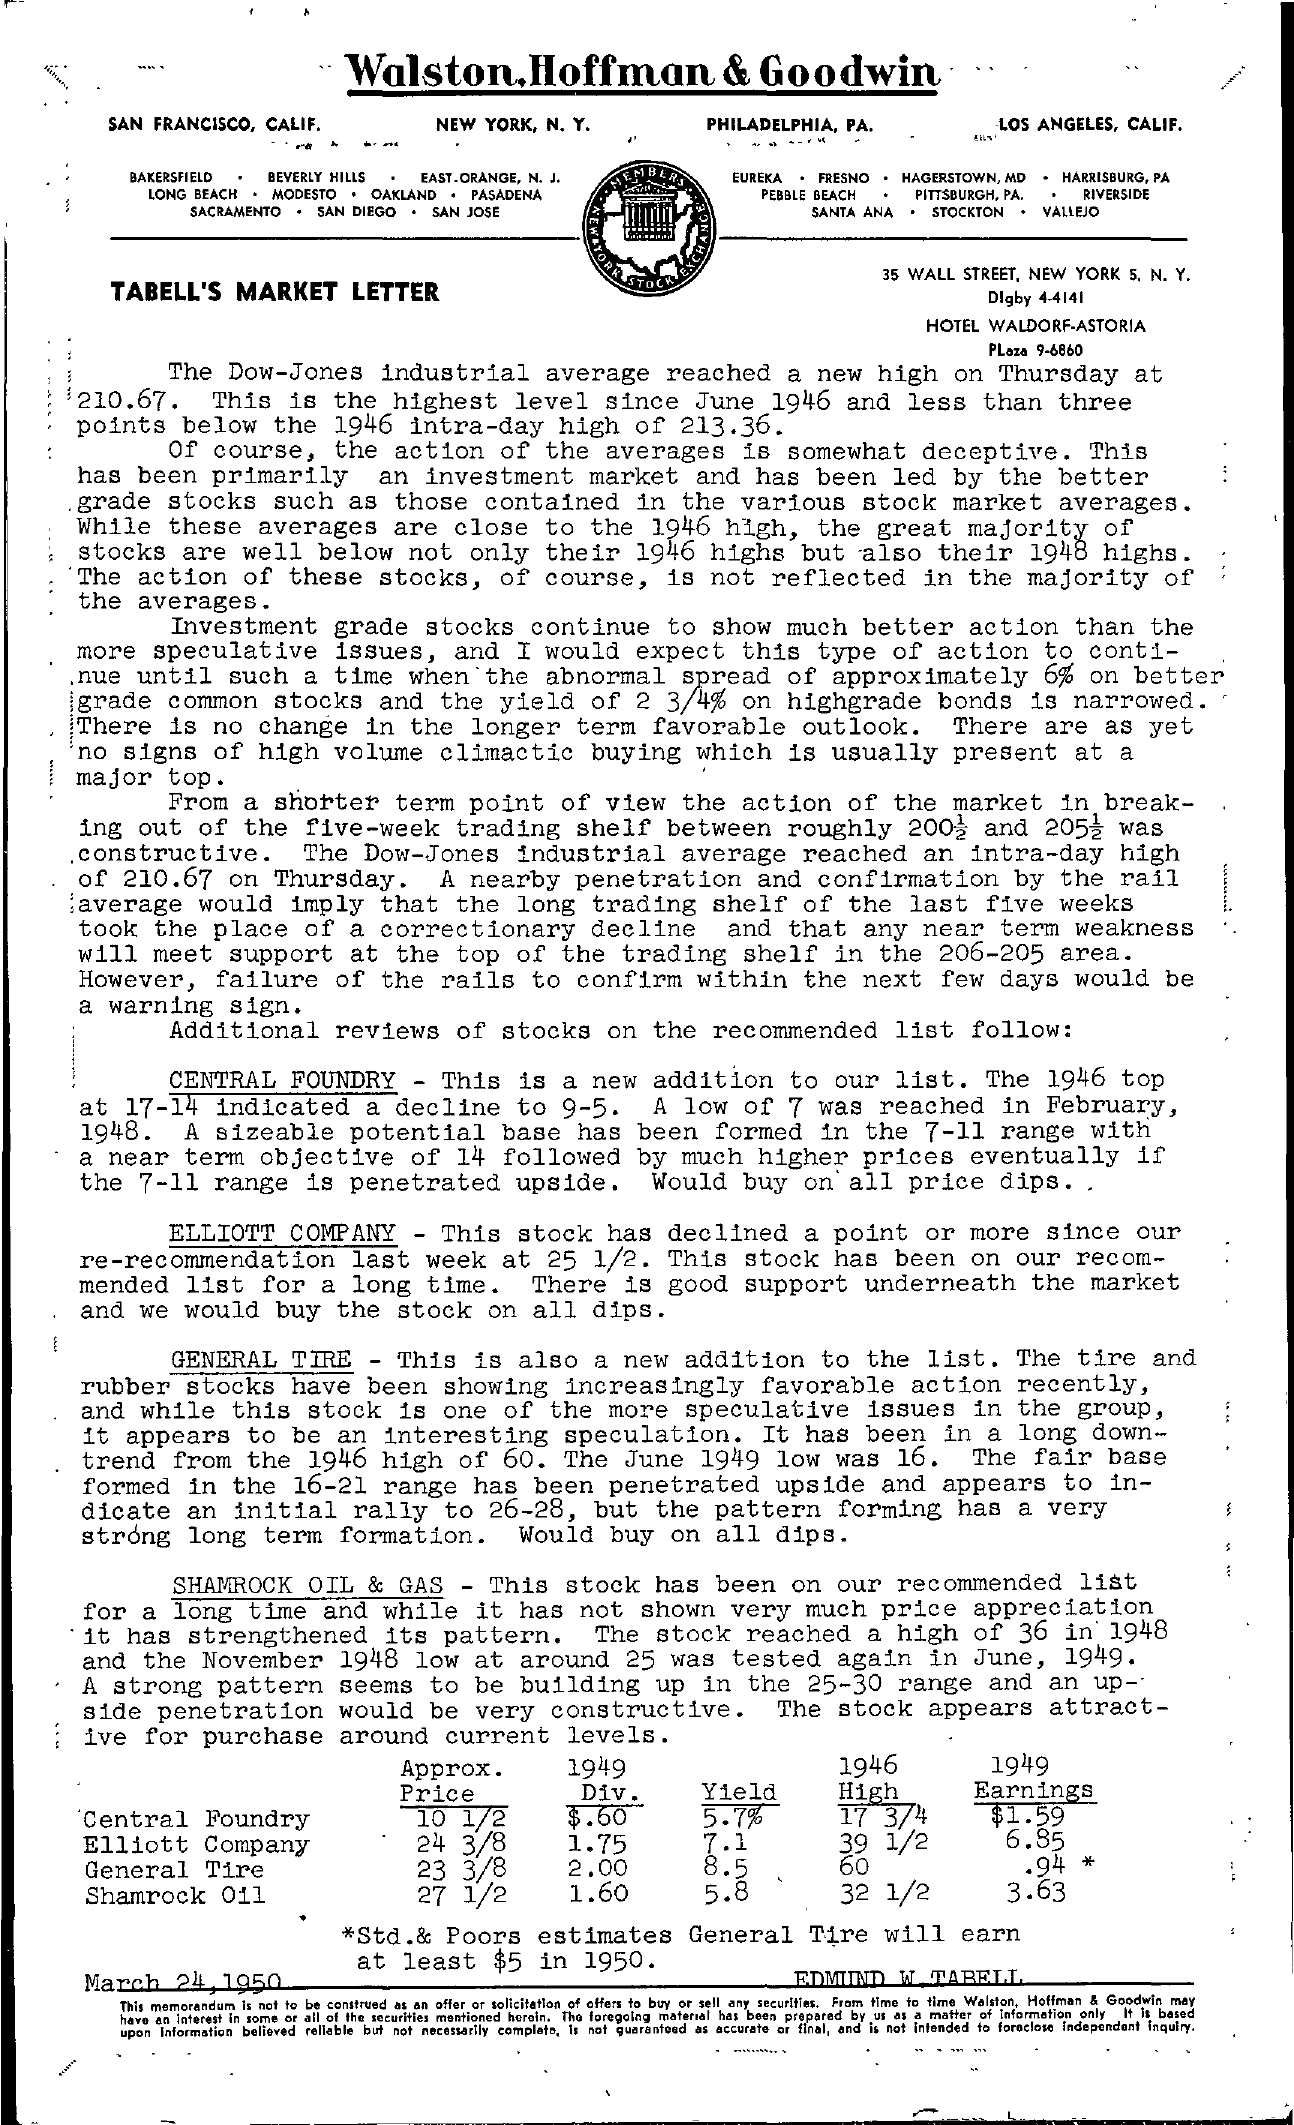 Tabell's Market Letter - March 24, 1950